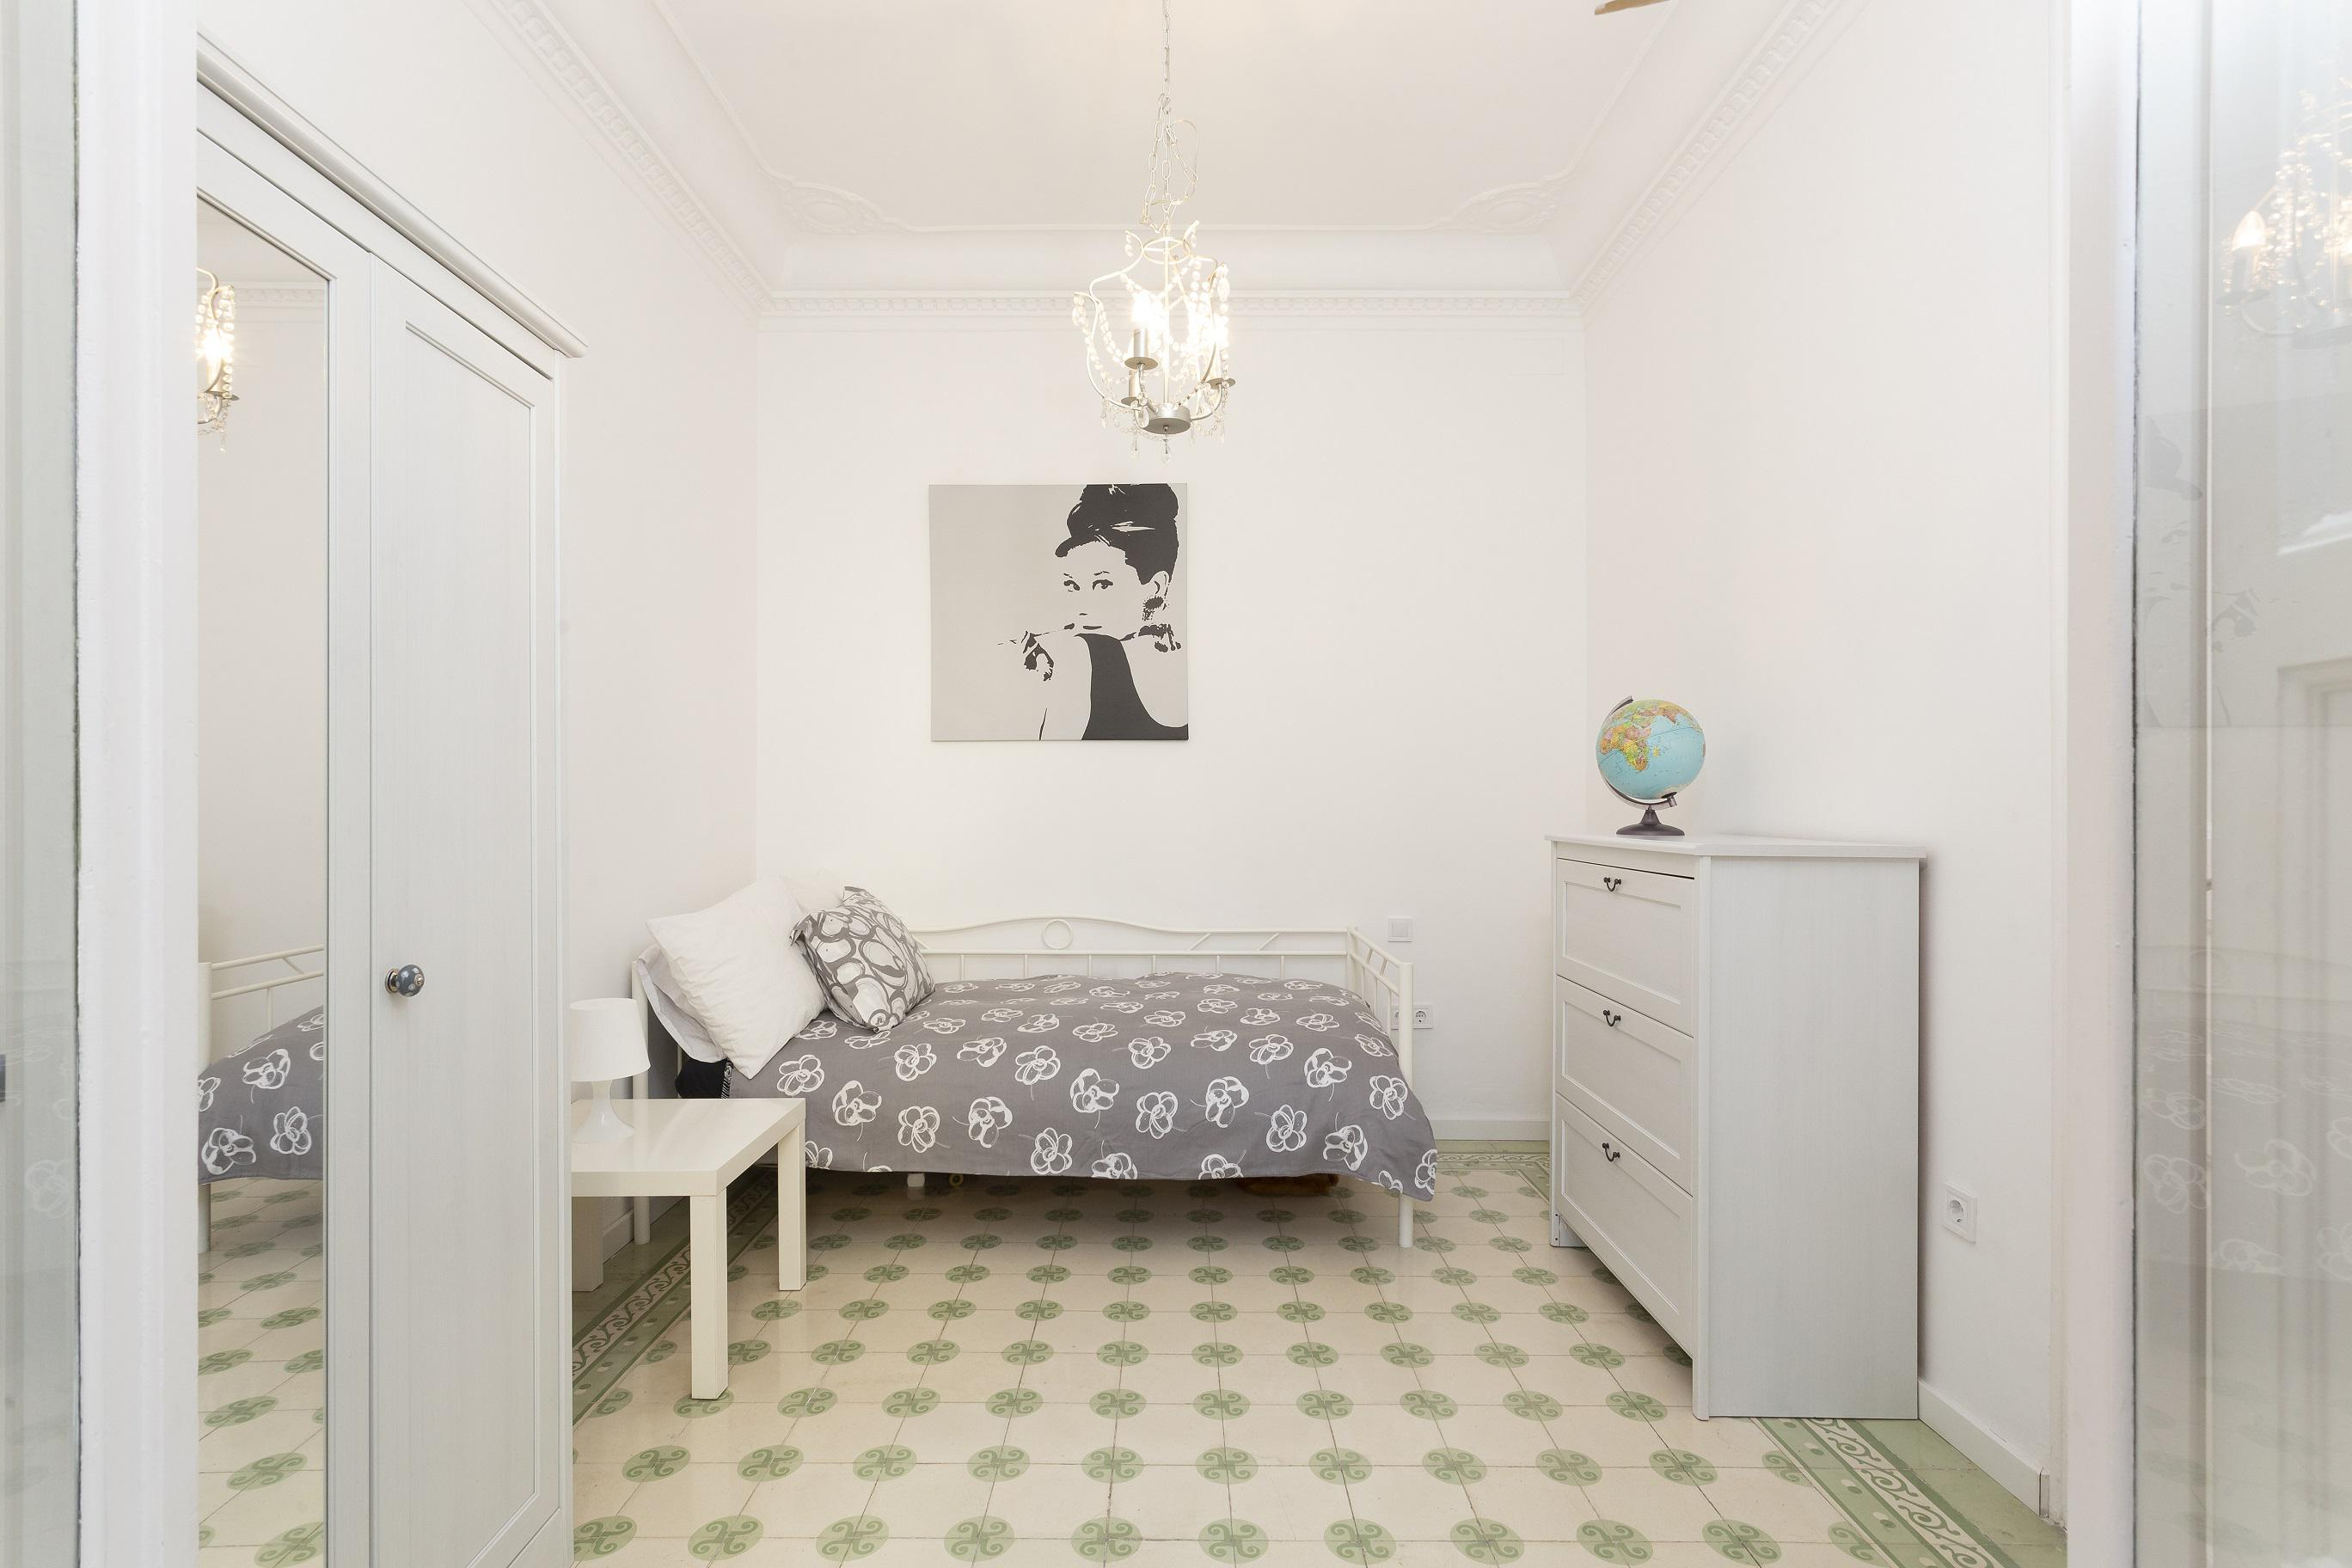 236190 Apartment for sale in Eixample, Old Left Eixample 13